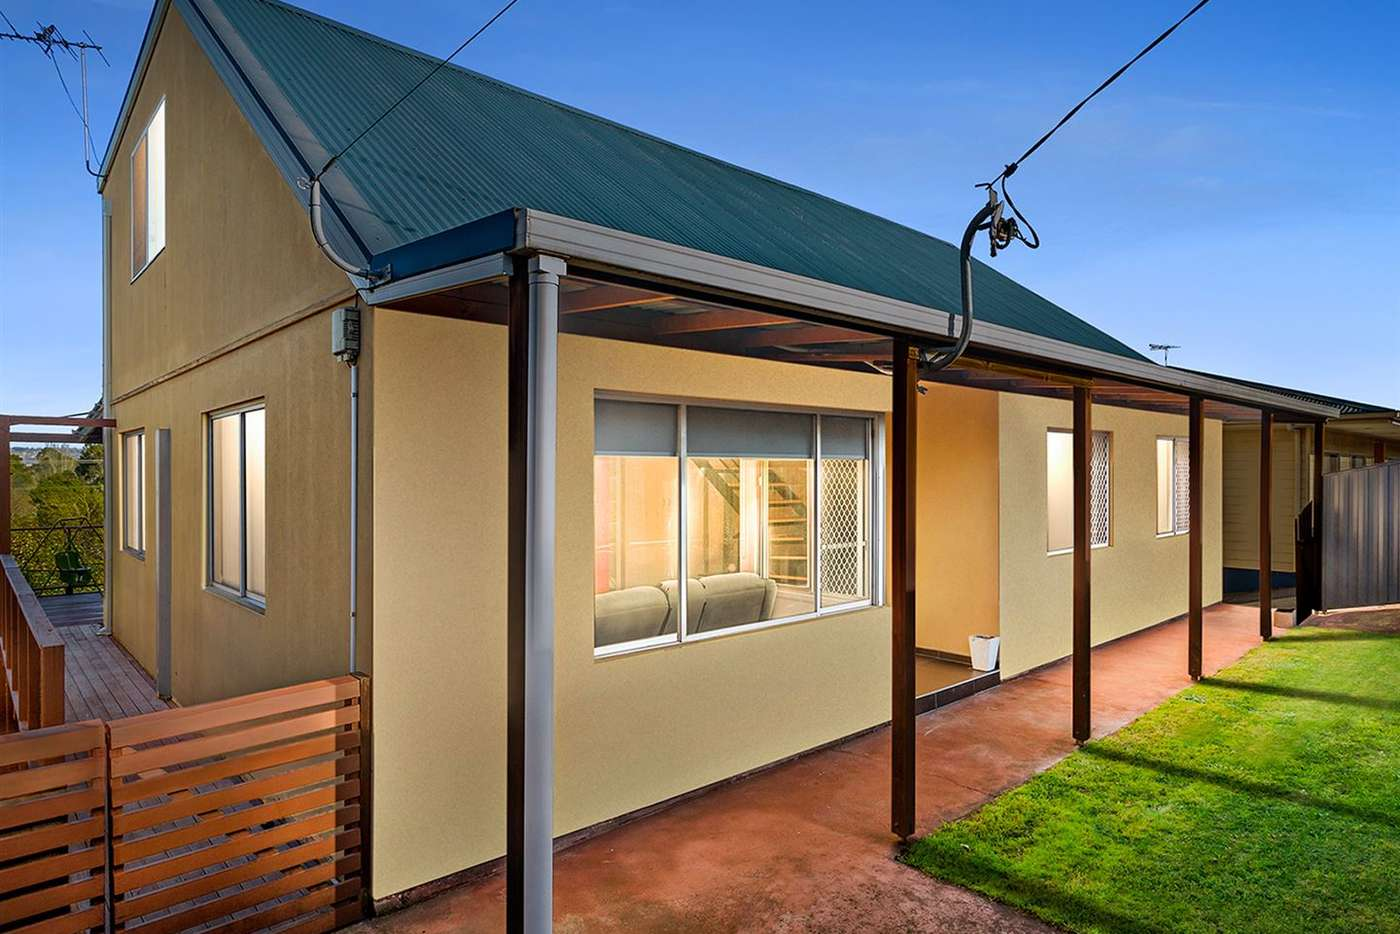 Main view of Homely house listing, 12 Crawford St, Mowbray TAS 7248